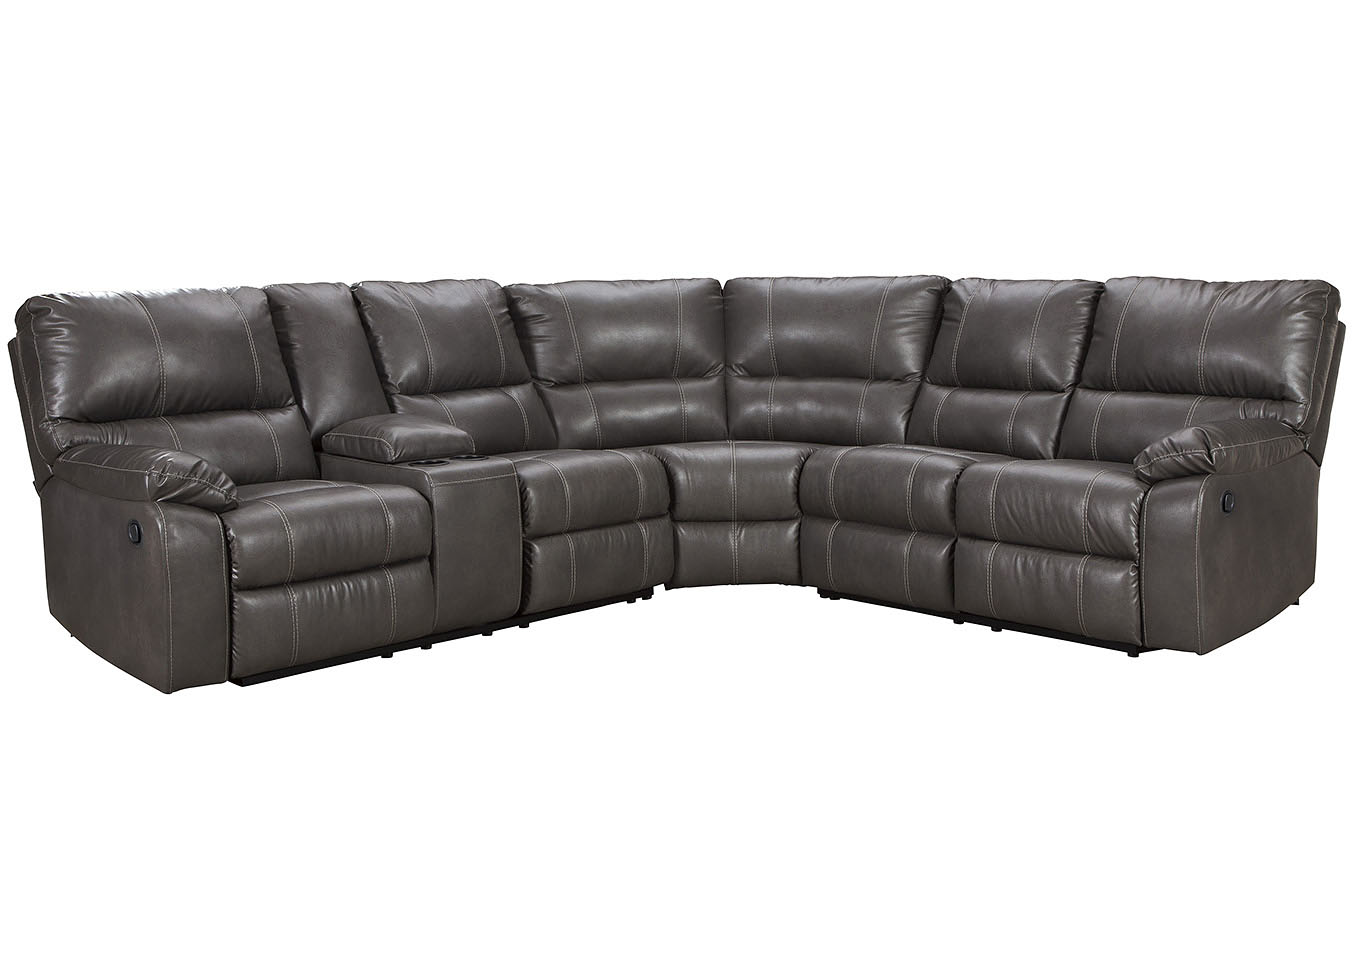 Country House Furniture Warstein Gray Power Reclining Sectional W